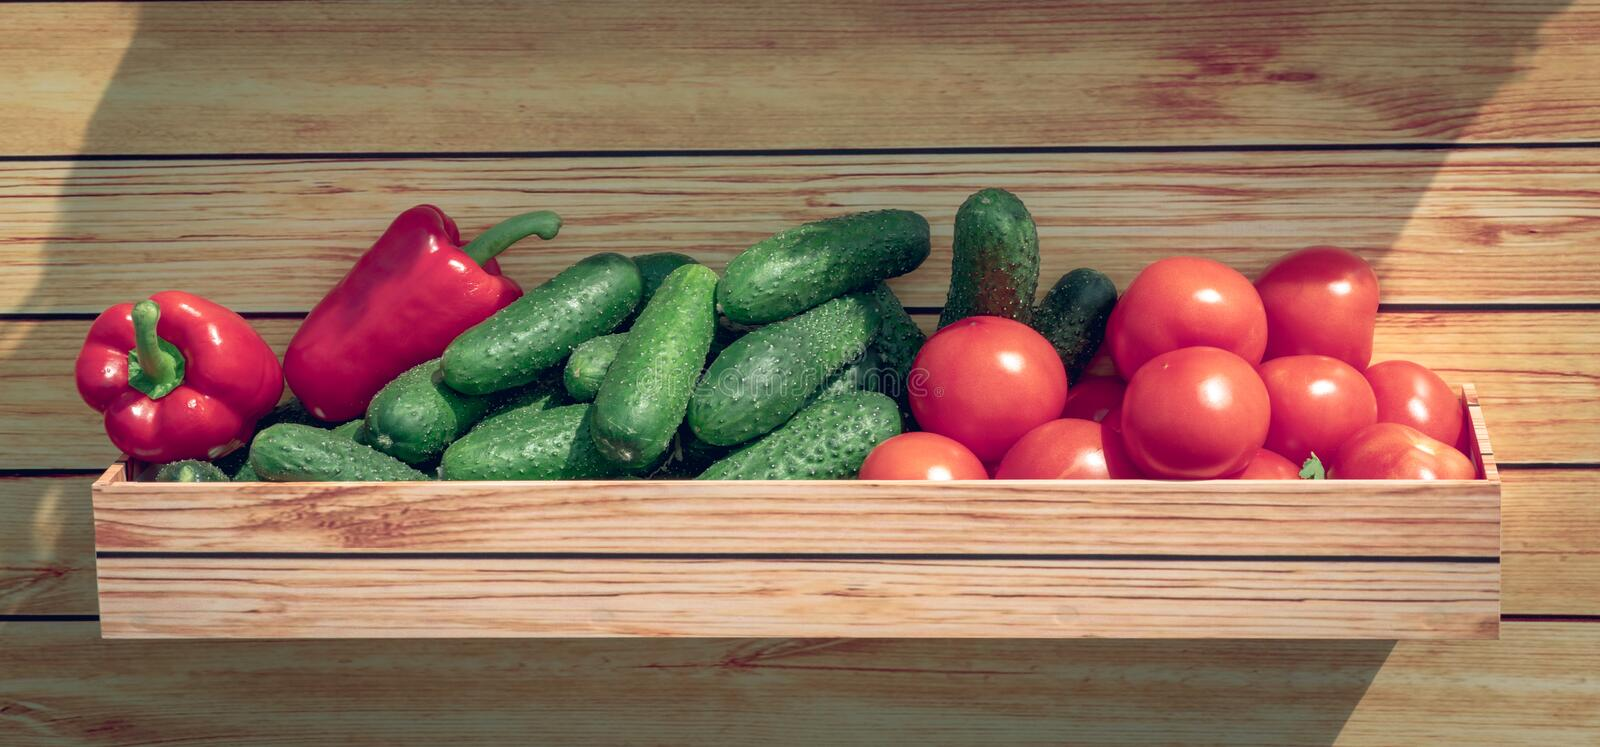 Healthy organic vegetables in a wooden basket on a wooden background. Organic farm tomatoes, paprika,cucumbers stock images